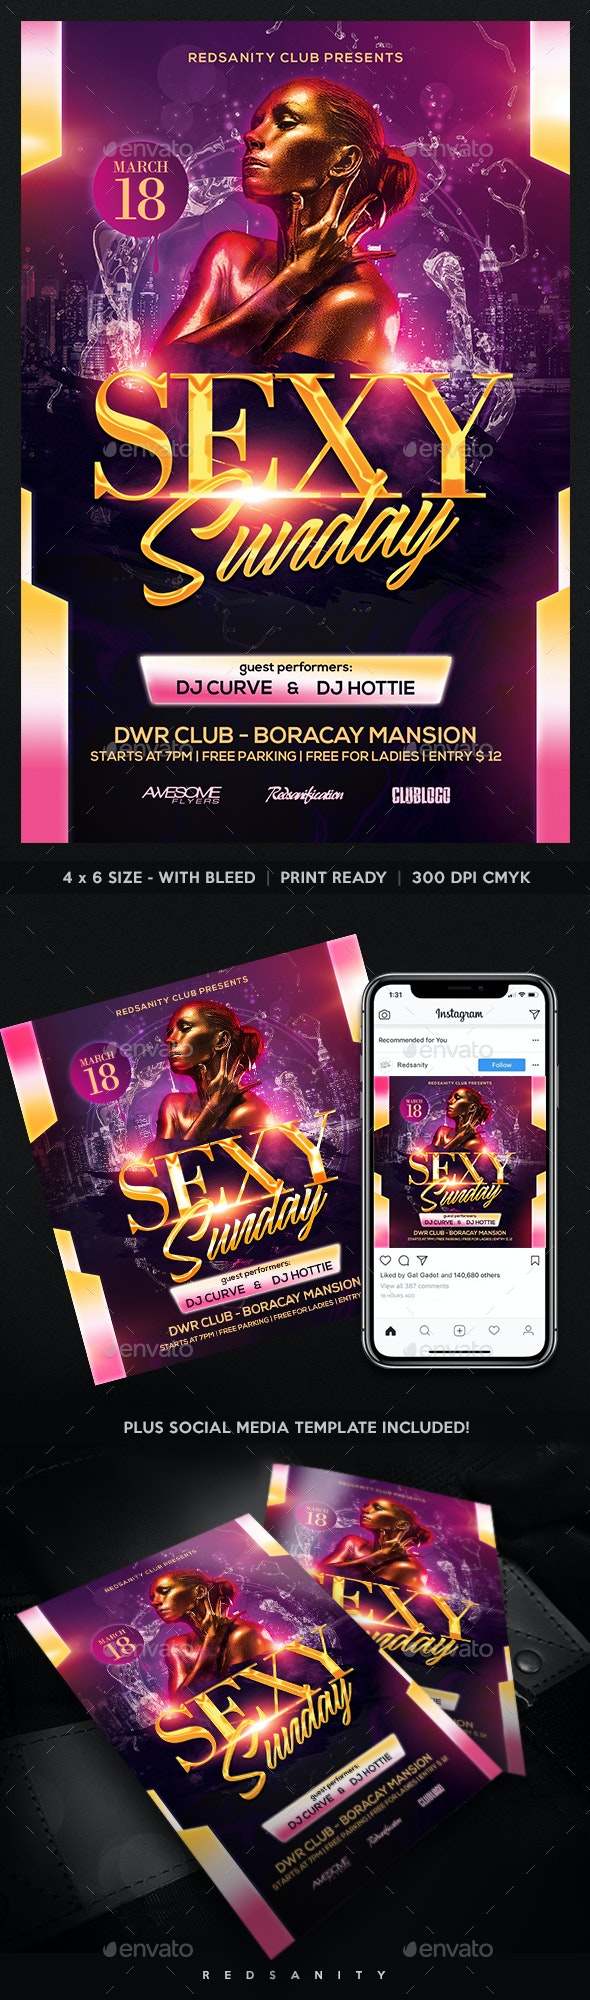 Sexy Sunday Flyer - Clubs & Parties Events